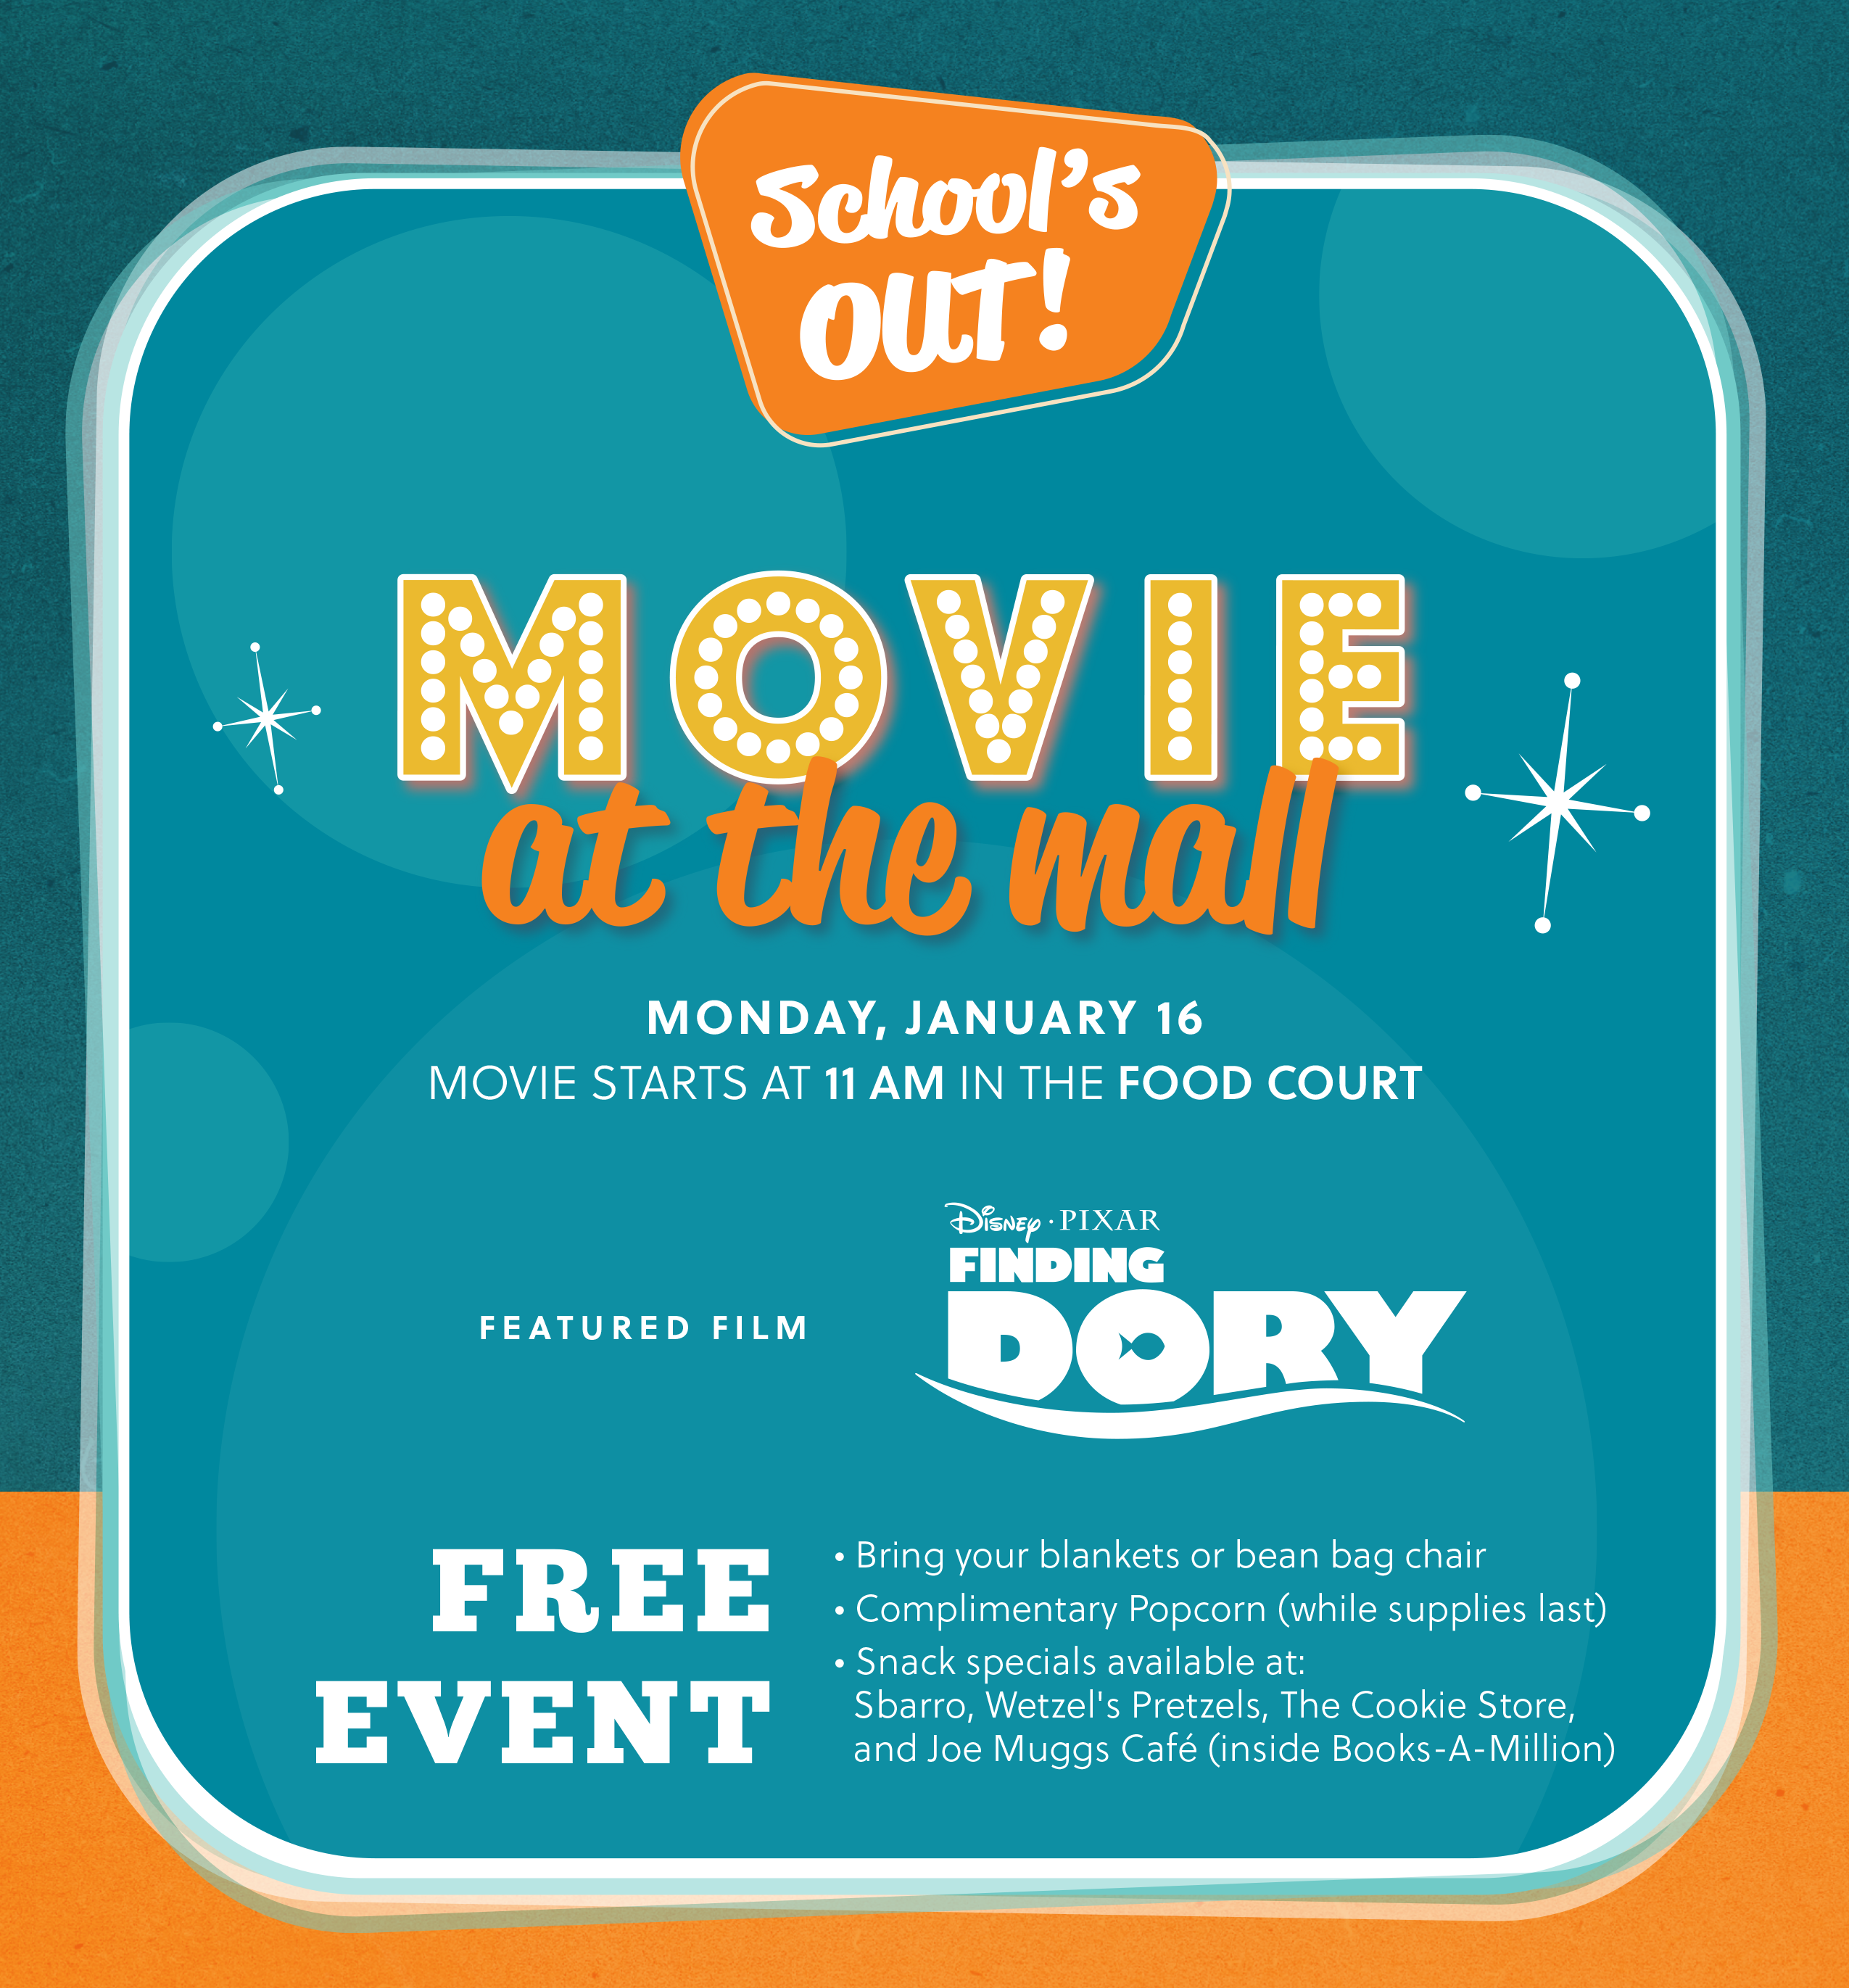 Stones River Mall introduces Movie at the Mall featuring 'Finding Dory' on January 16 (Martin Luther King, Jr. Day)